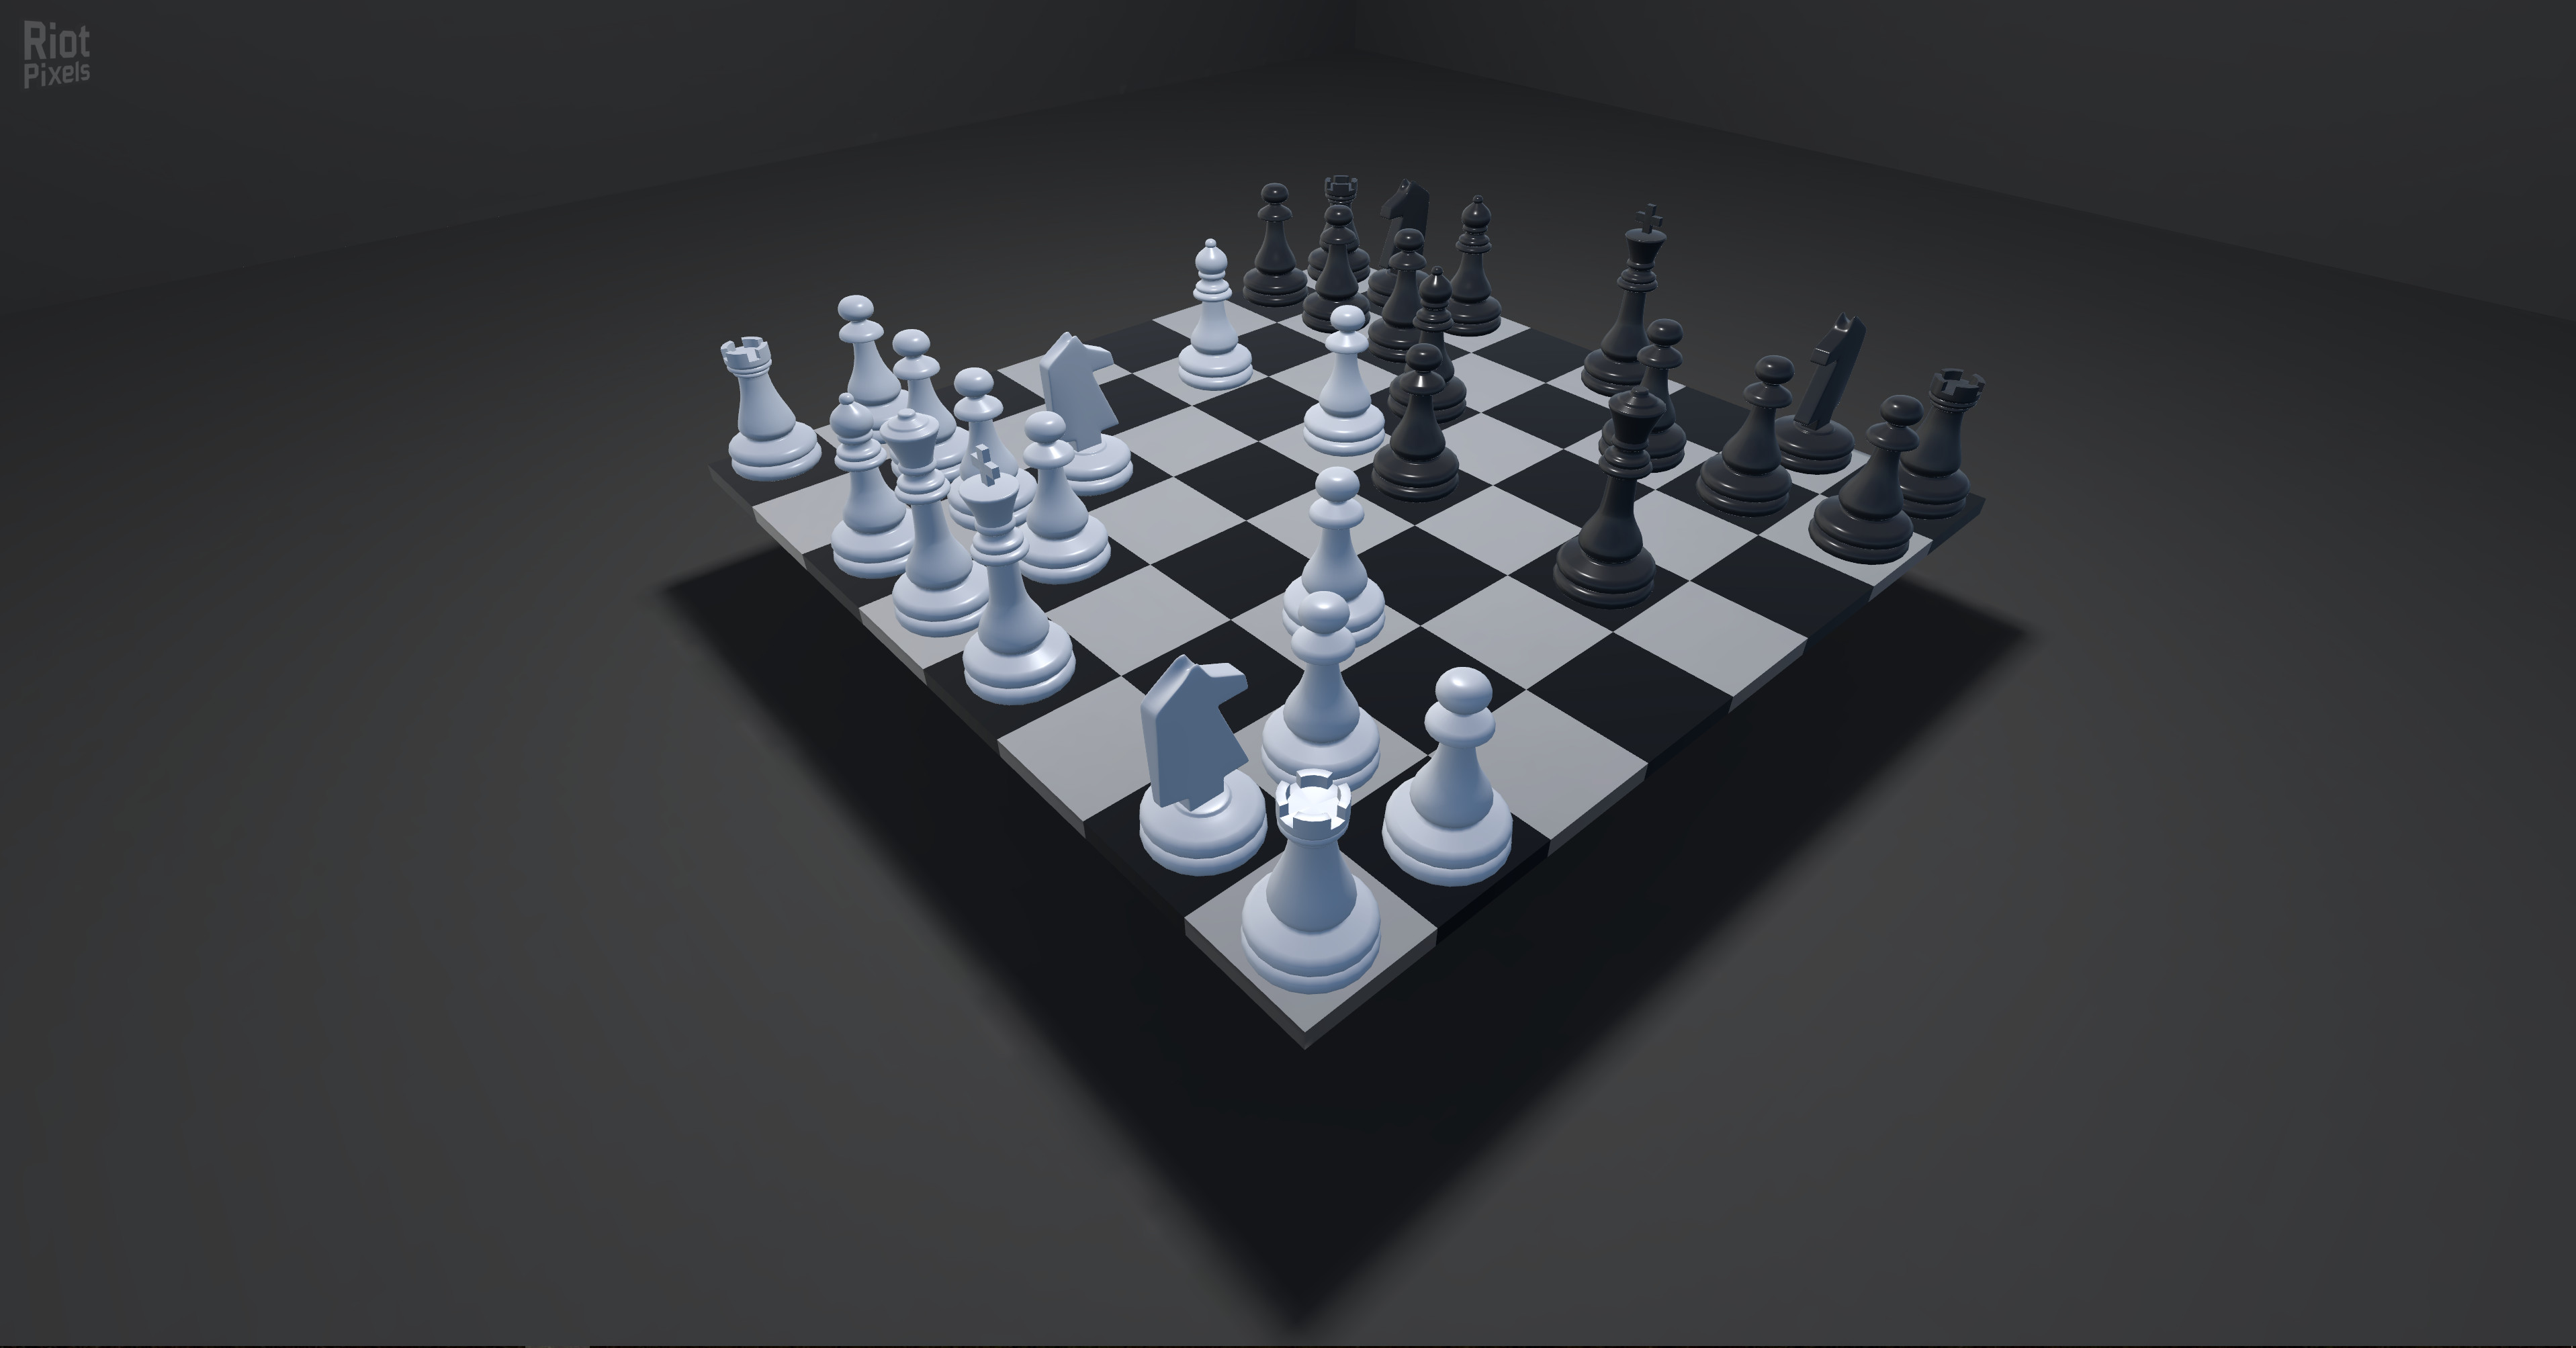 Very Real Chess - game screenshots at Riot Pixels, images